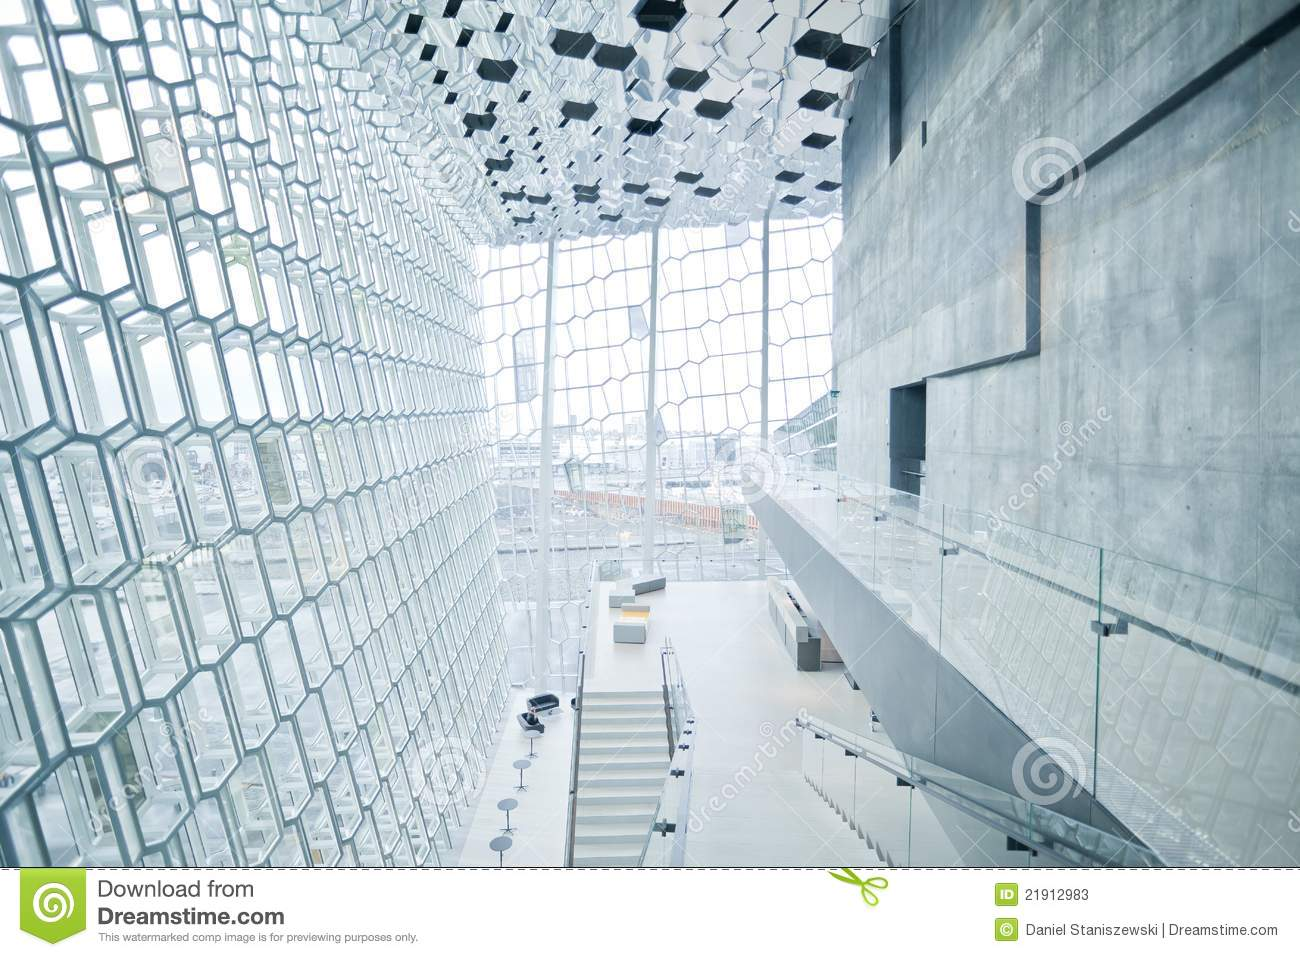 Harpa Concert Hall In Reykjavik Iceland Stock Photos